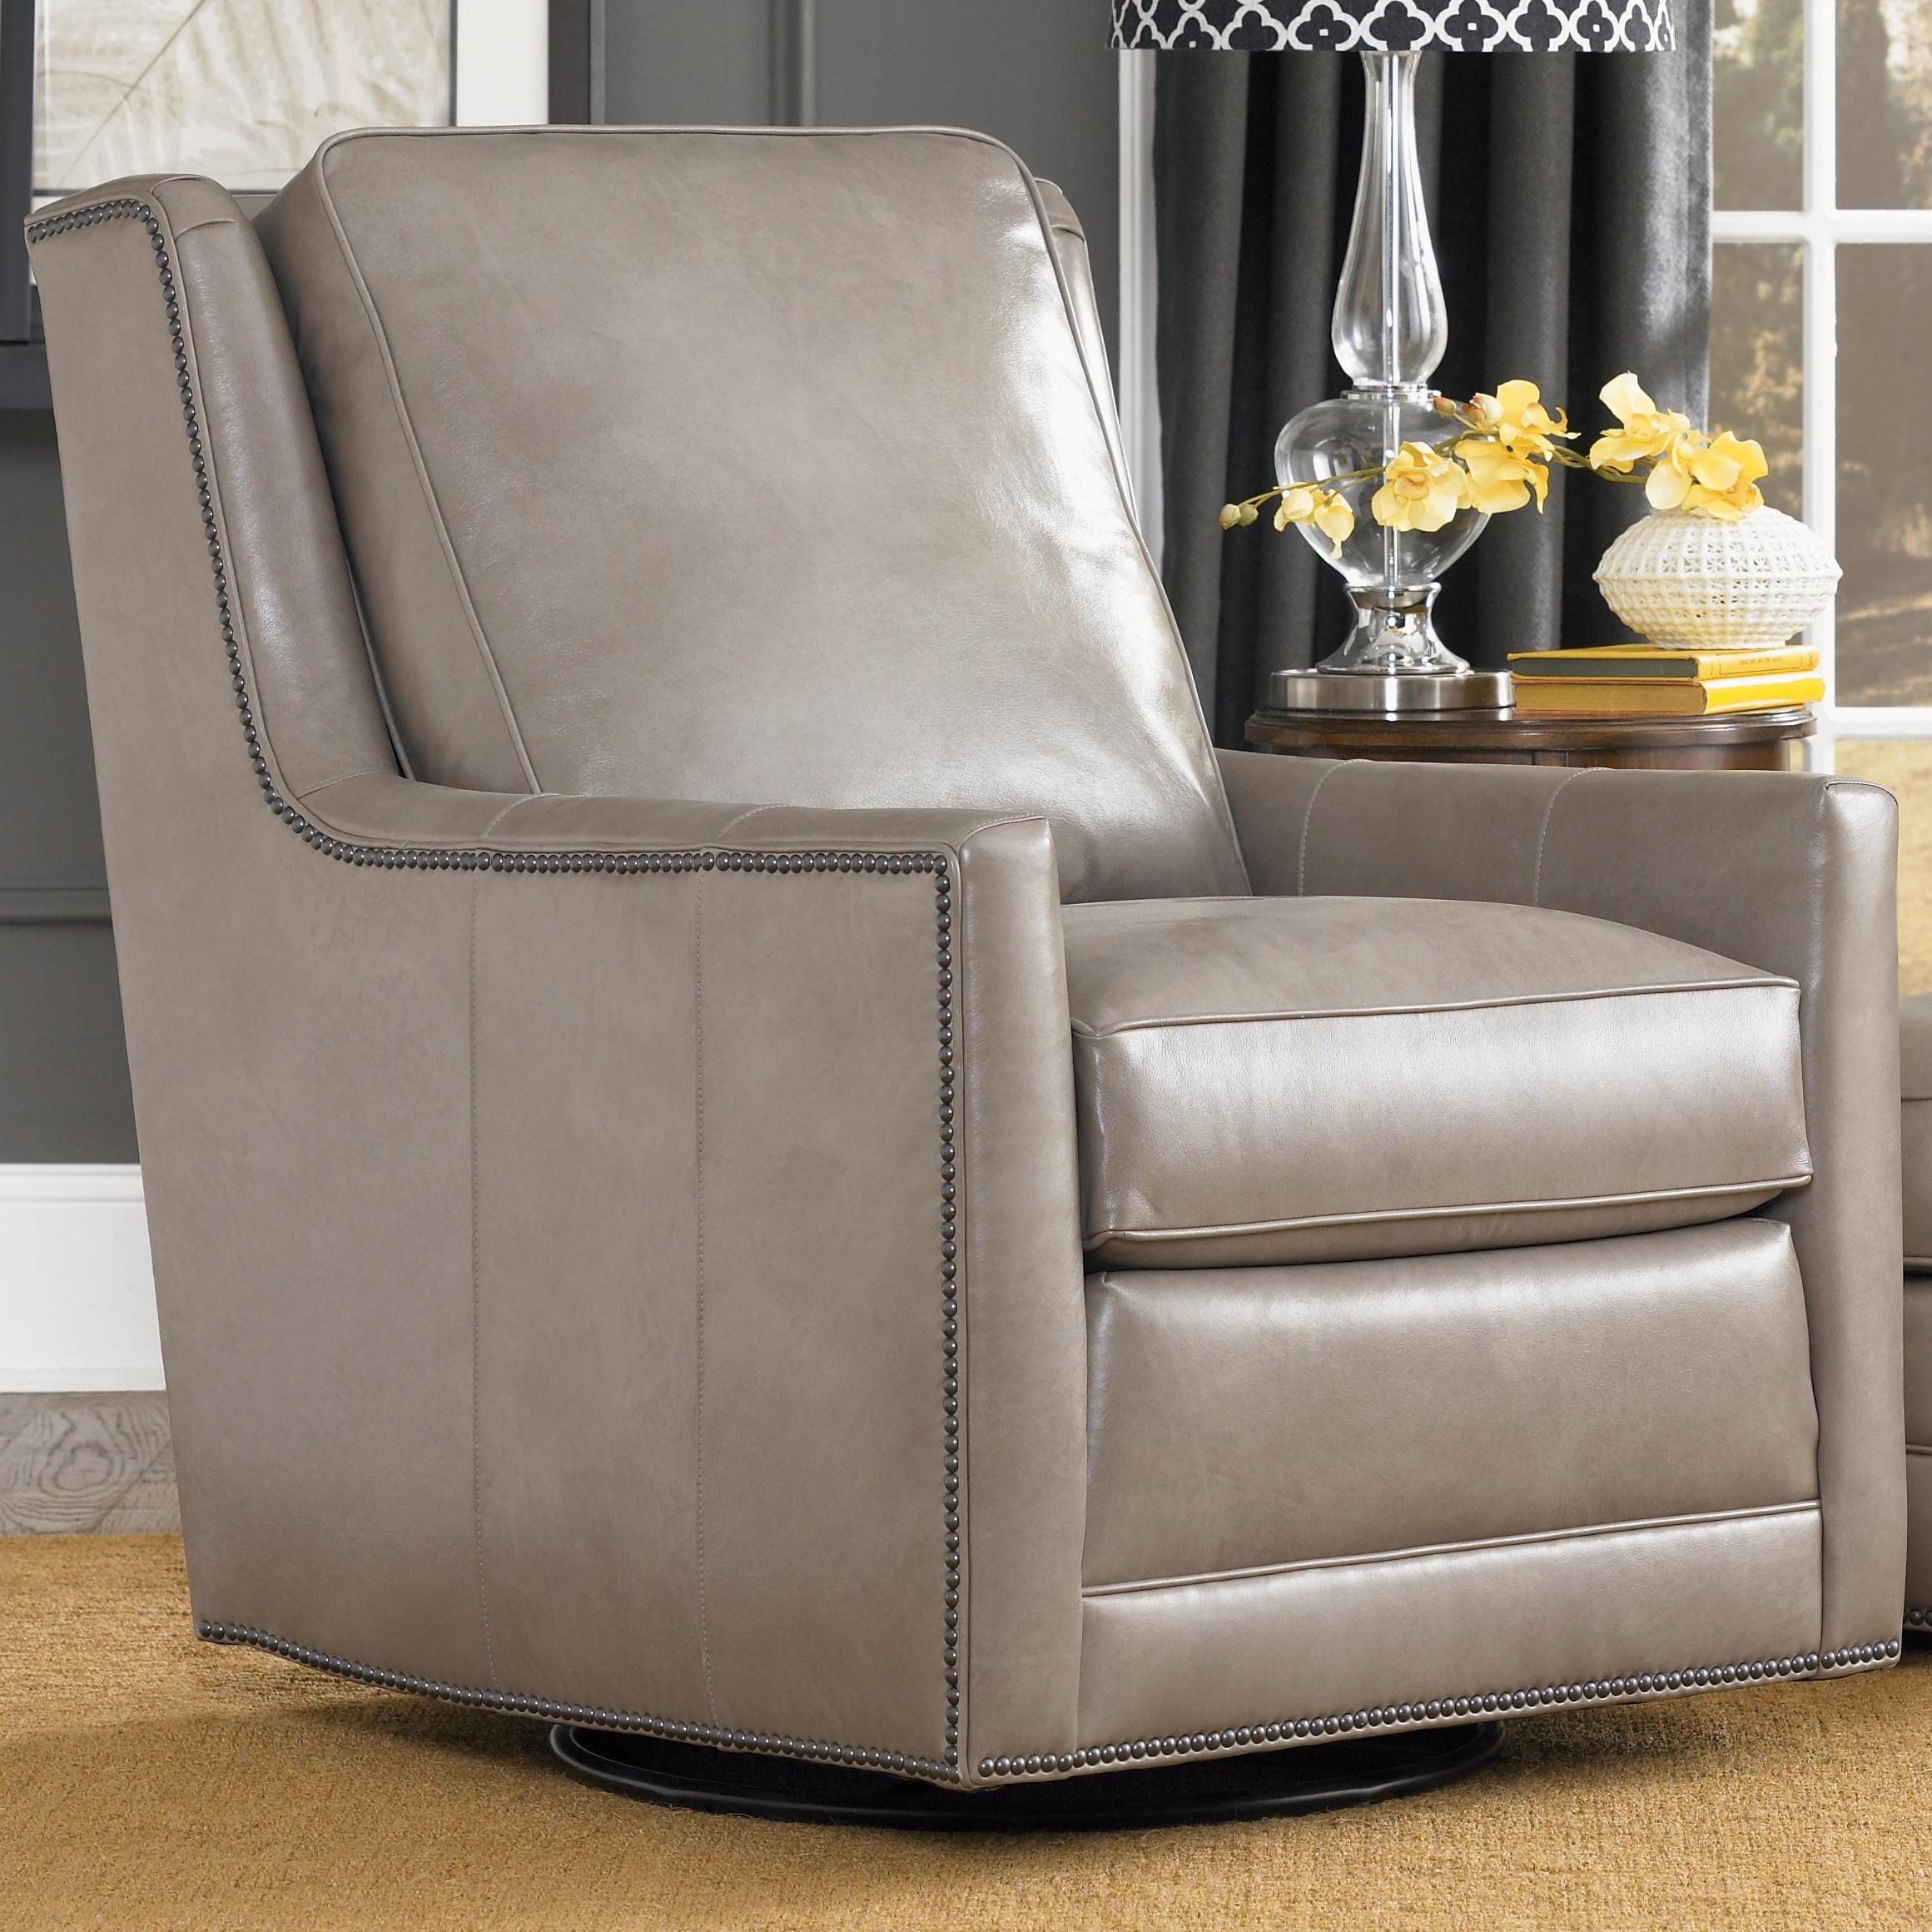 Transitional Swivel Chair with Nailhead Trim by Smith Brothers